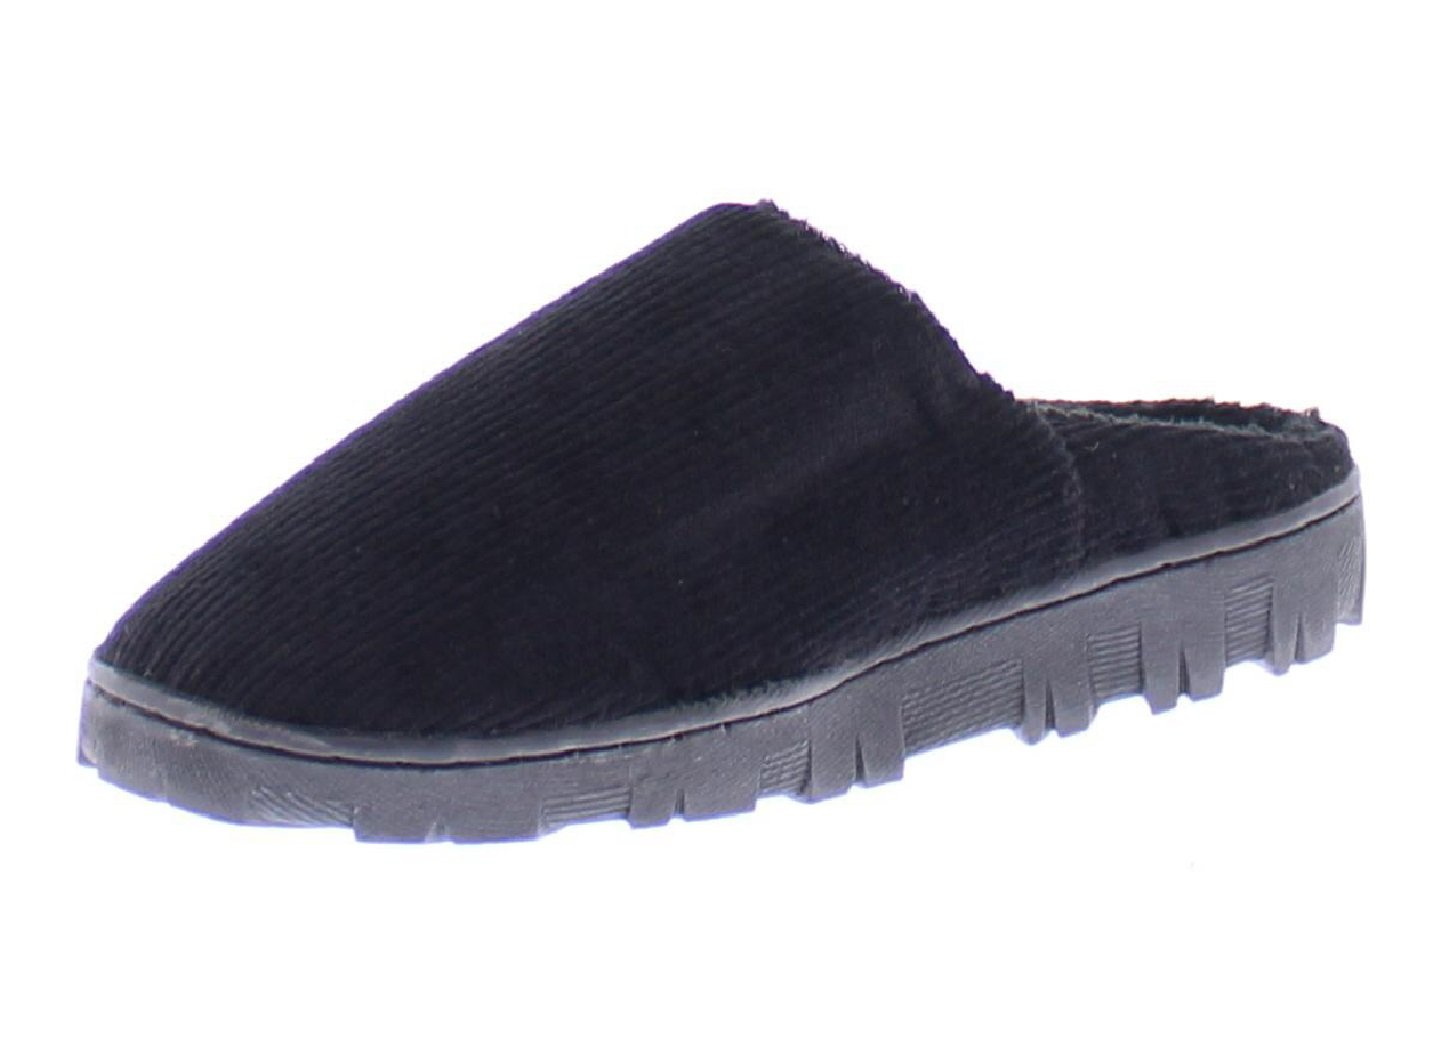 Gold Toe Boy's Clyde Corduroy Fleece Lined Memory Foam Indoor Outdoor House Slipper,Slip On Clog Shoe Black M